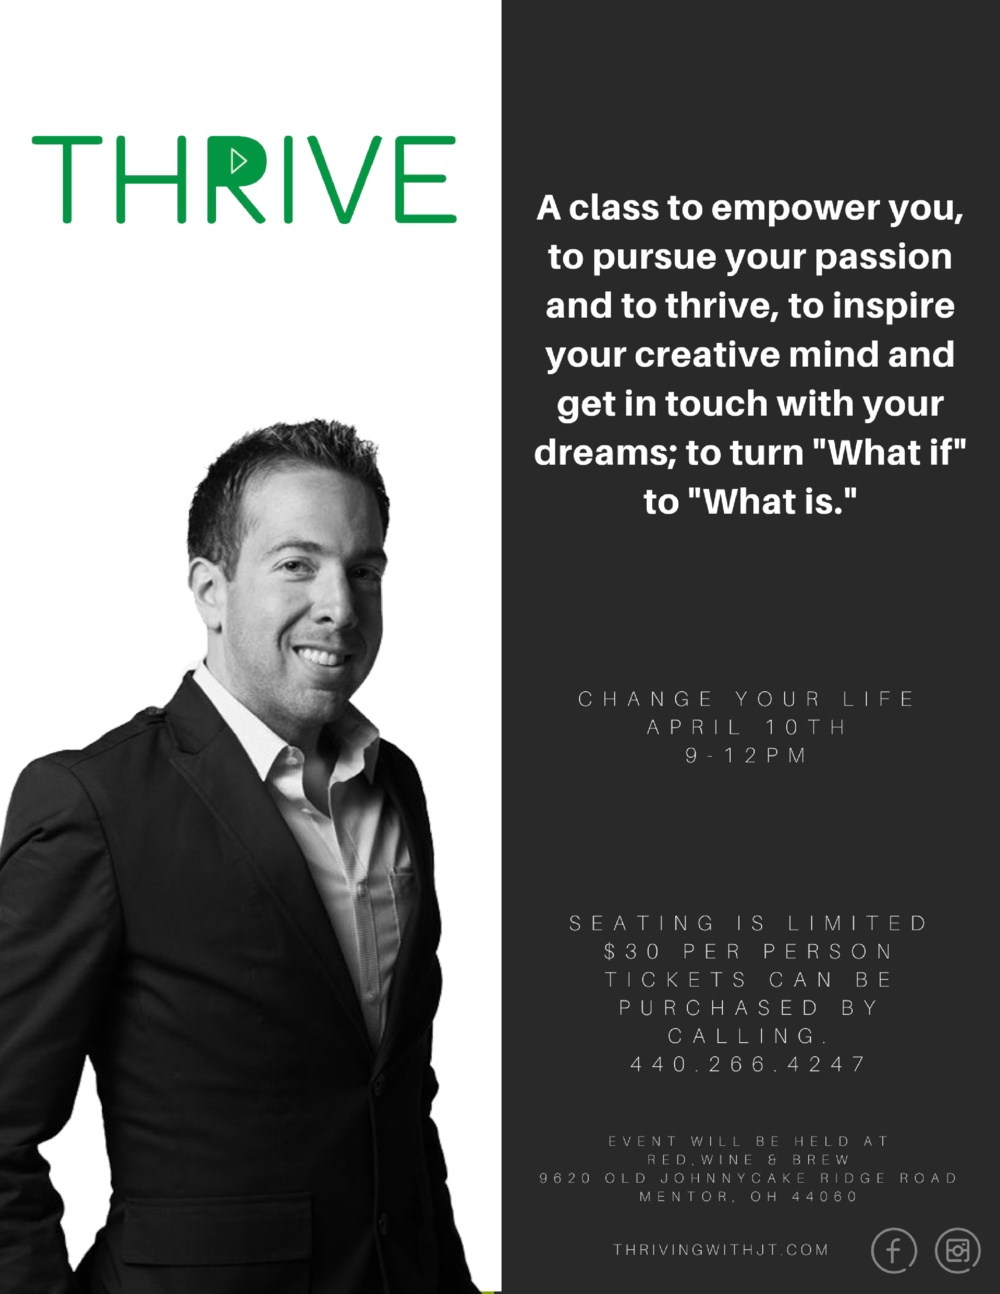 THRIVE motivational class cleveland ohio